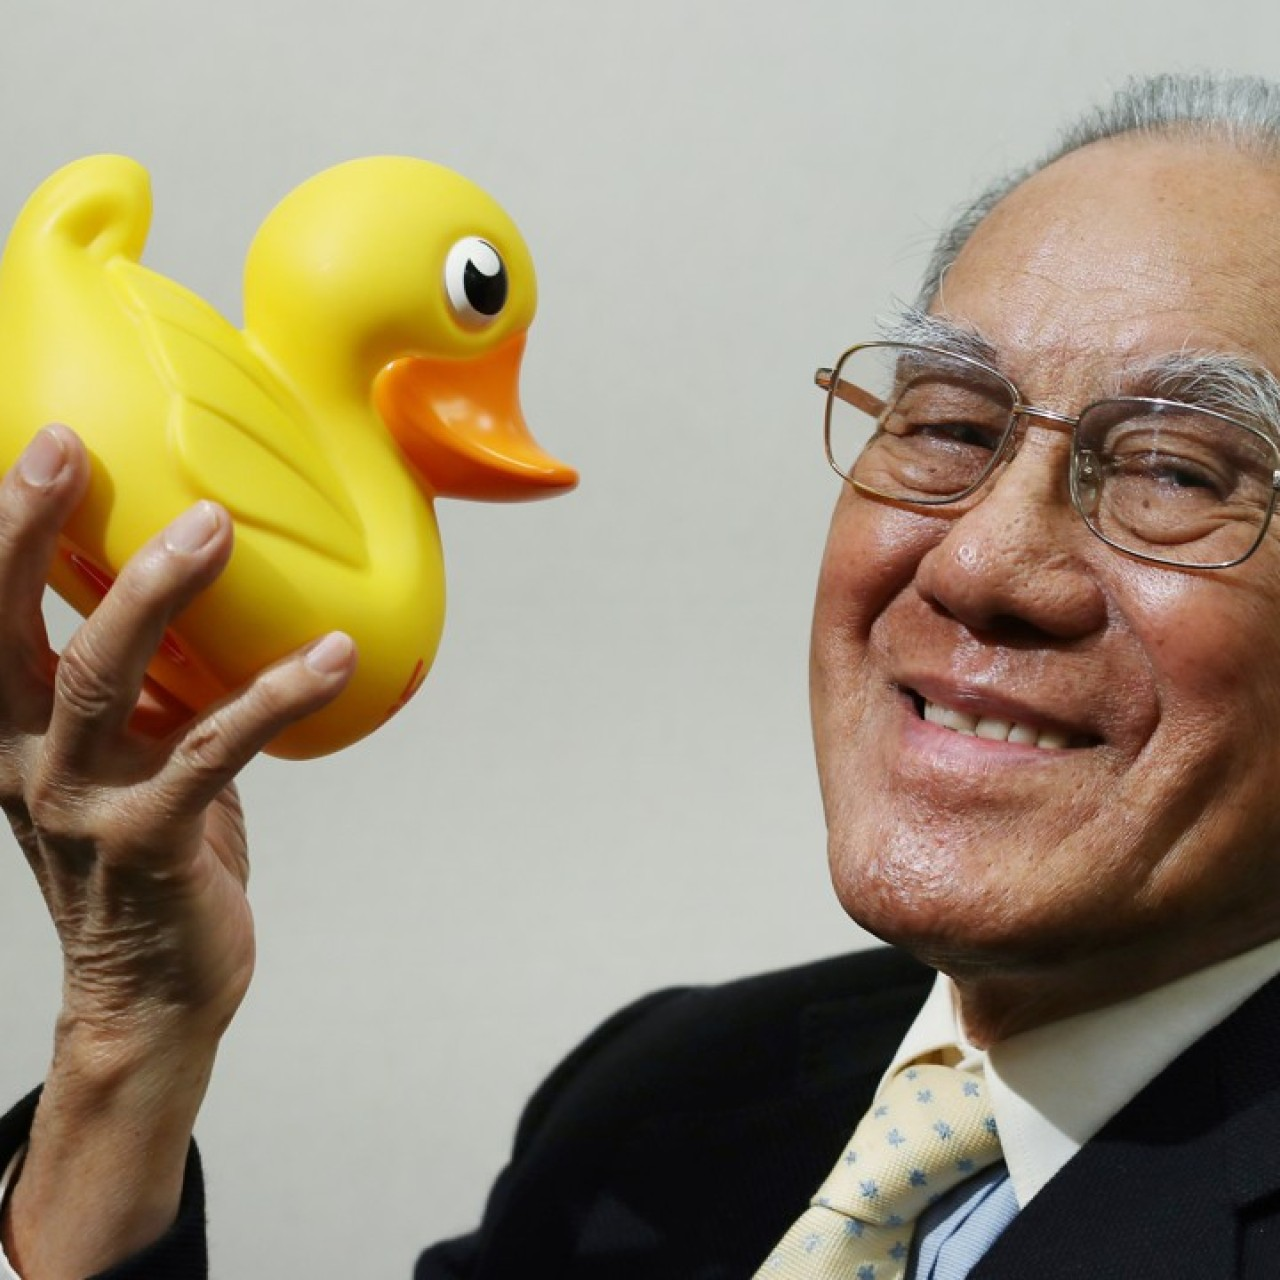 How the rubber duck is Hong Kong's business and spirit of 'can do